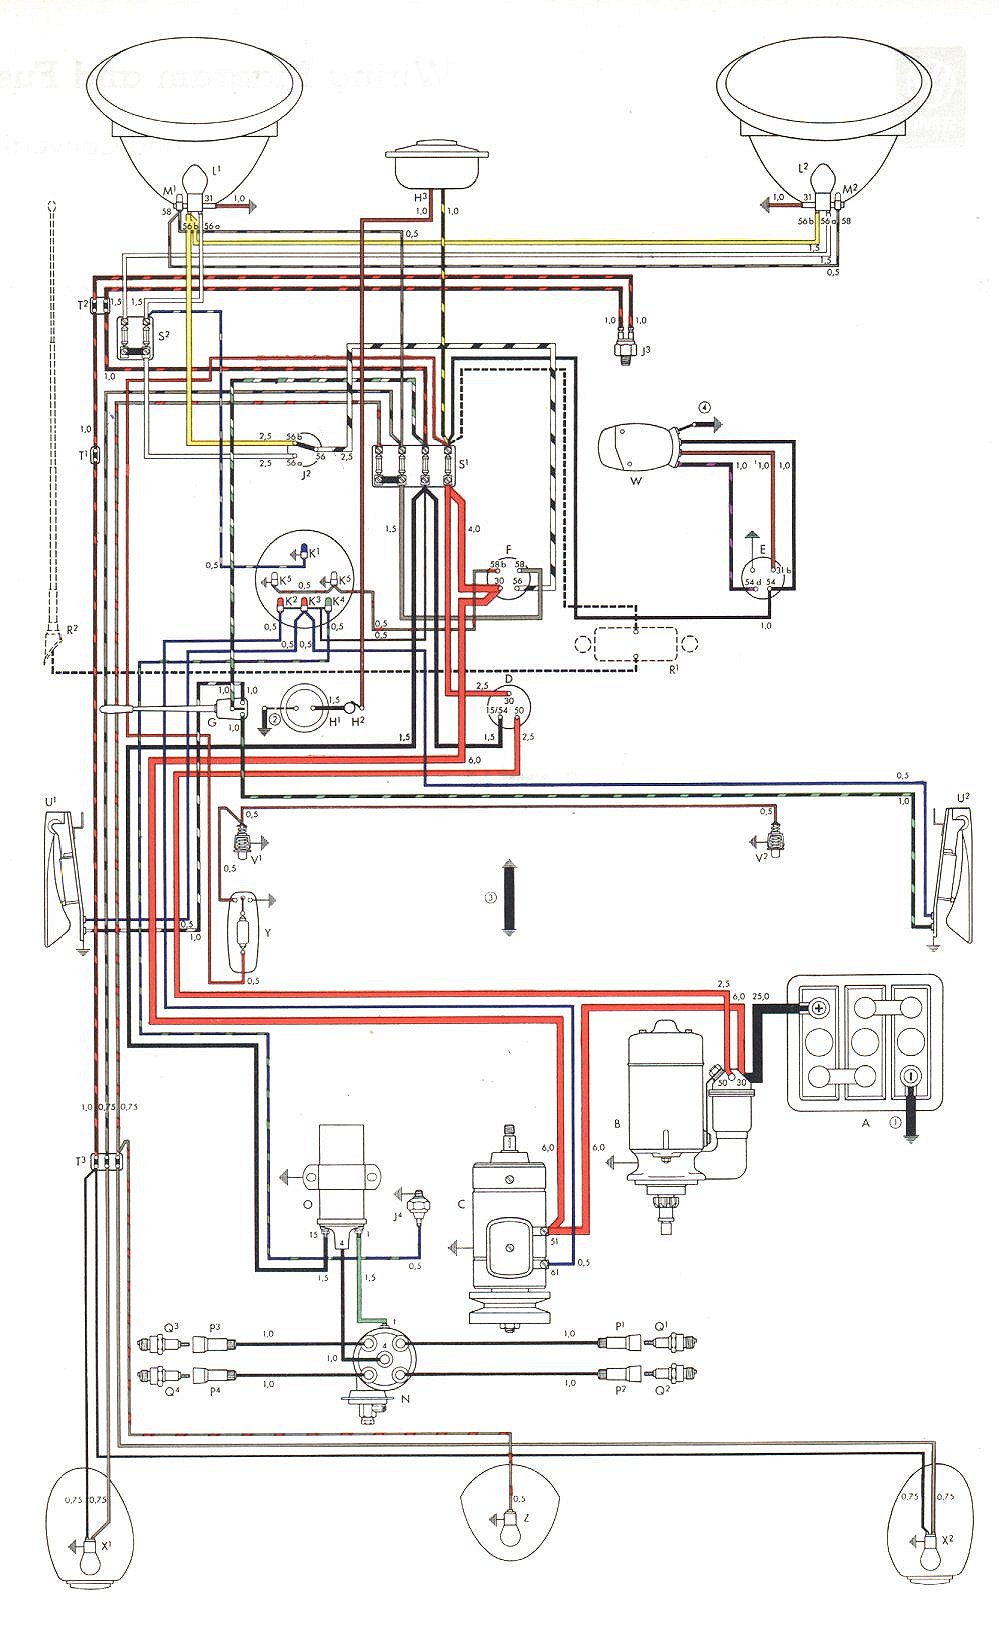 wiring diagram for 1974 vw super beetle the wiring diagram vw wiring diagrams wiring diagram